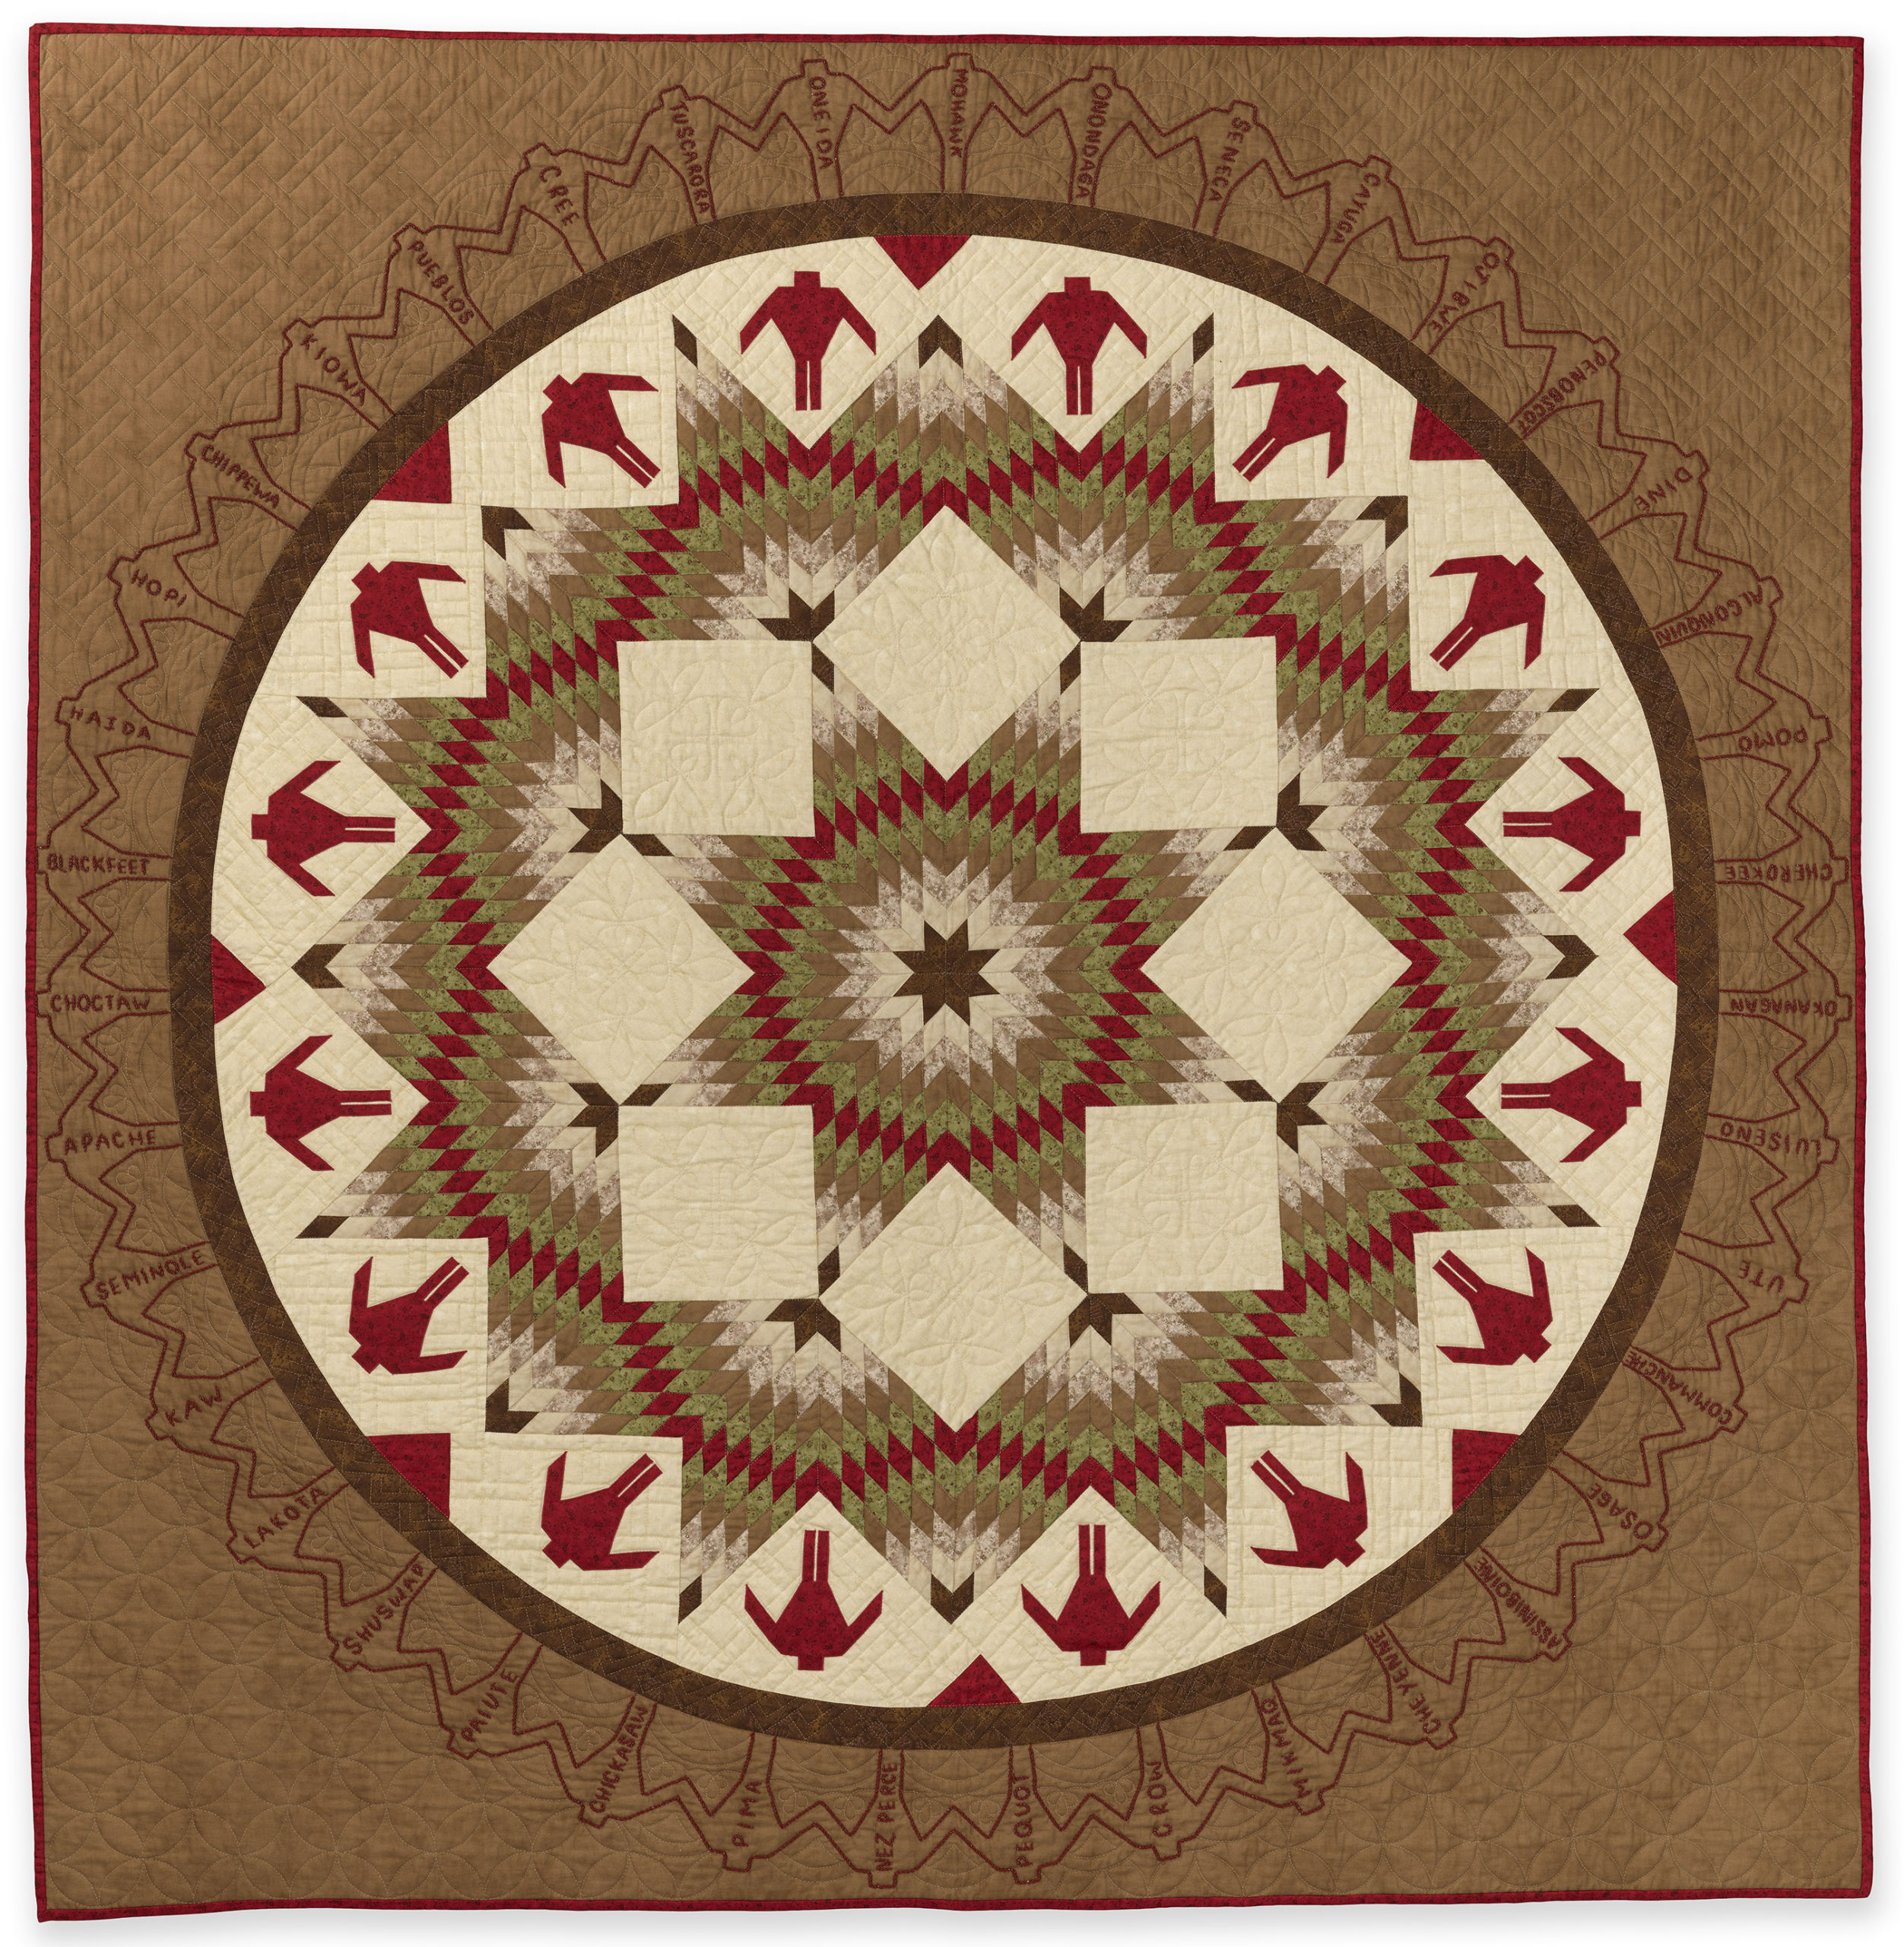 Join the Suzy Quilts Book Club and read about 400 years of quilt history with our creative community! suzyquilts.com #quilting #sewingdiy